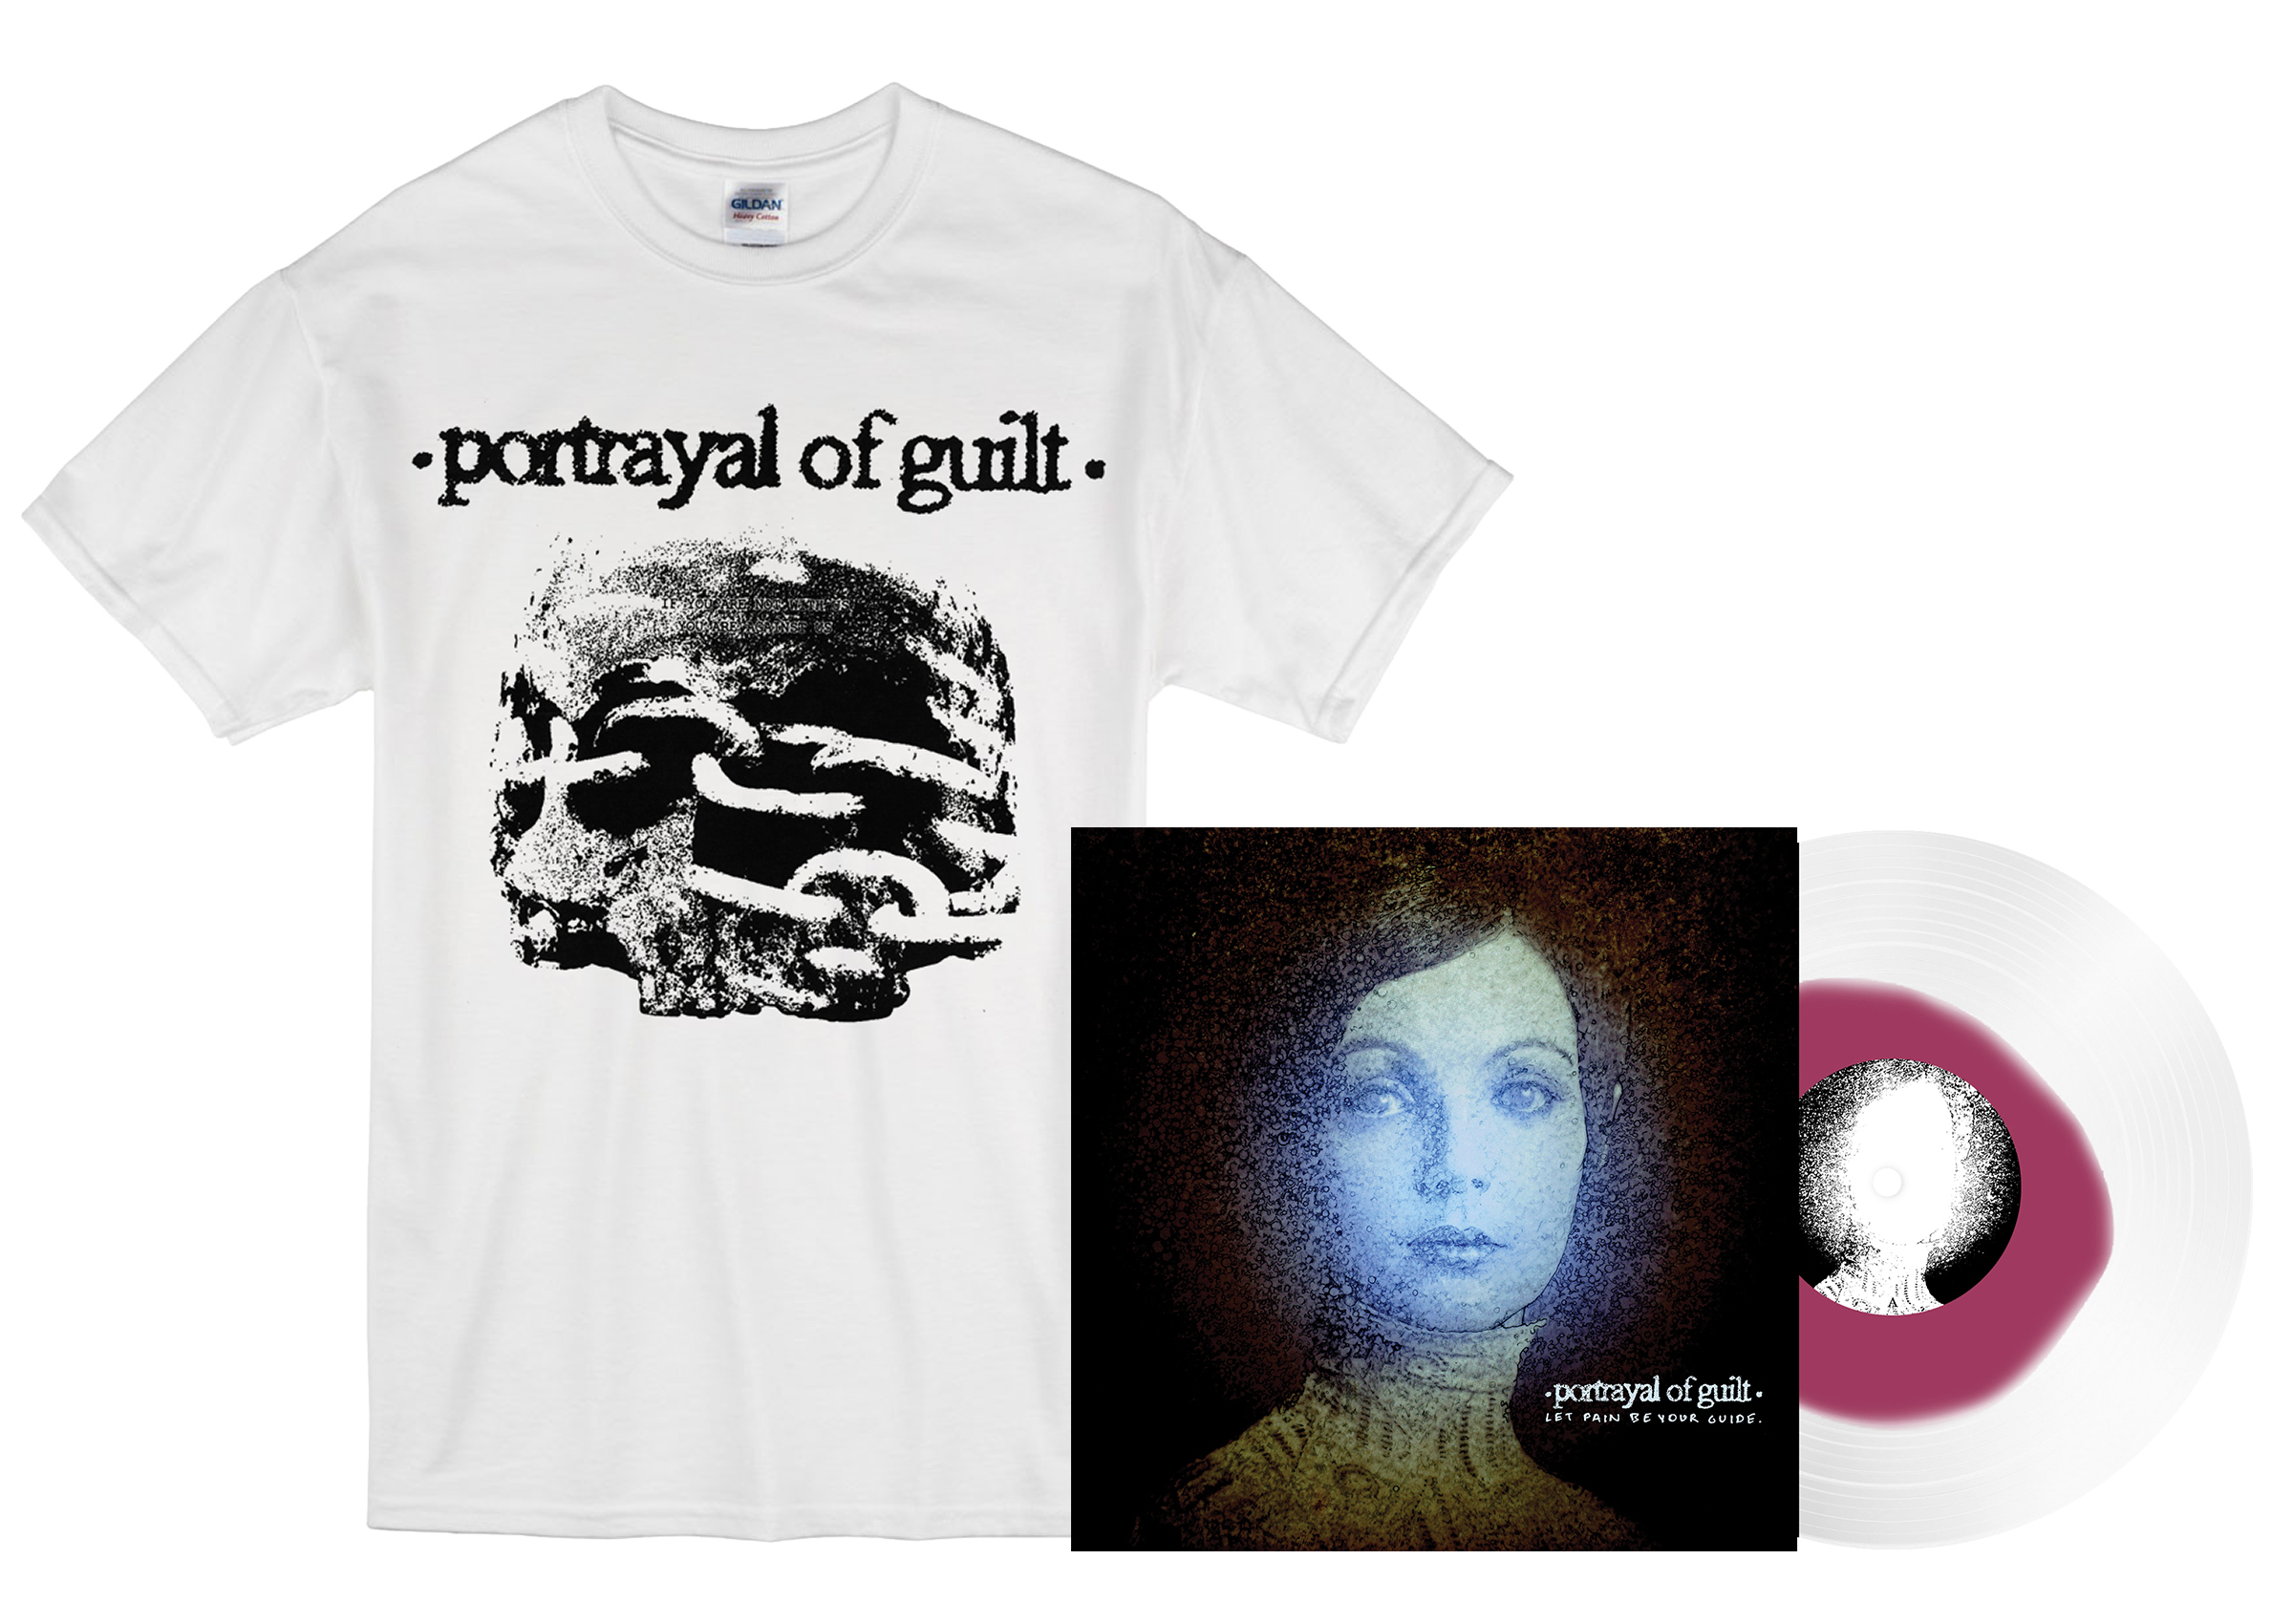 Portrayal of Guilt - 'Let Pain Be Your Guide' skull shirt + LP